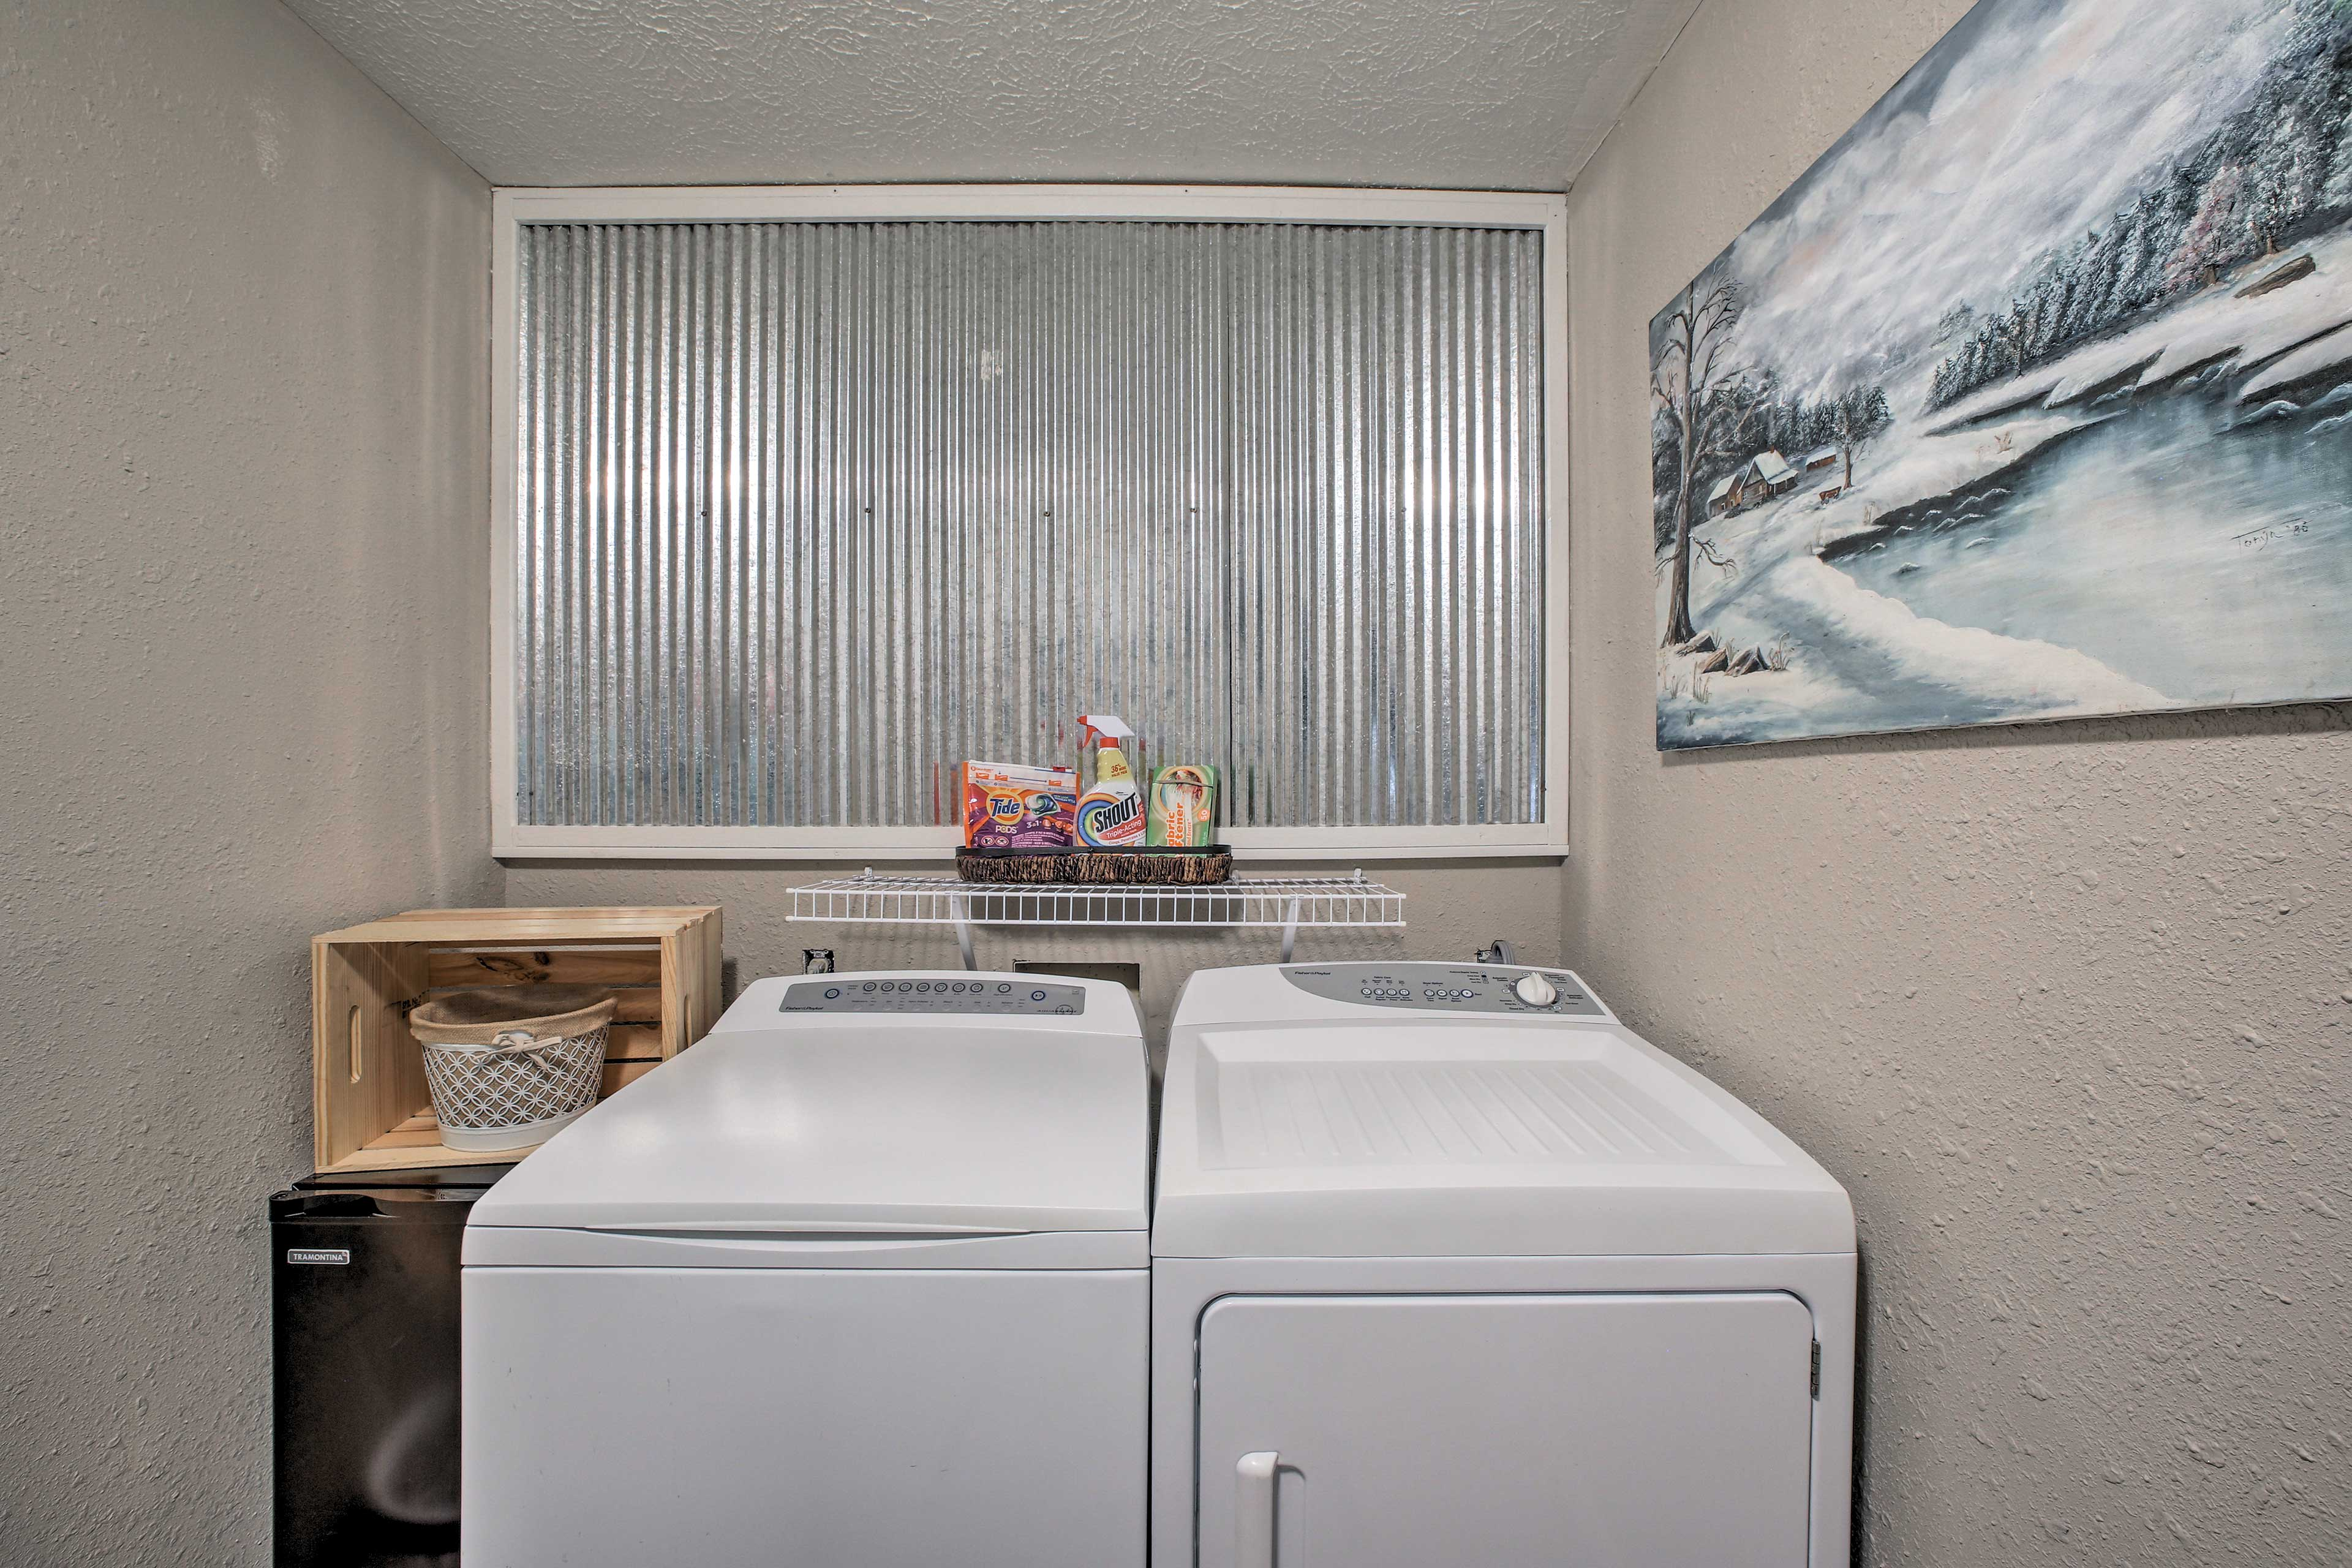 Keep all your adventure gear fresh in the in-unit laundry machines.